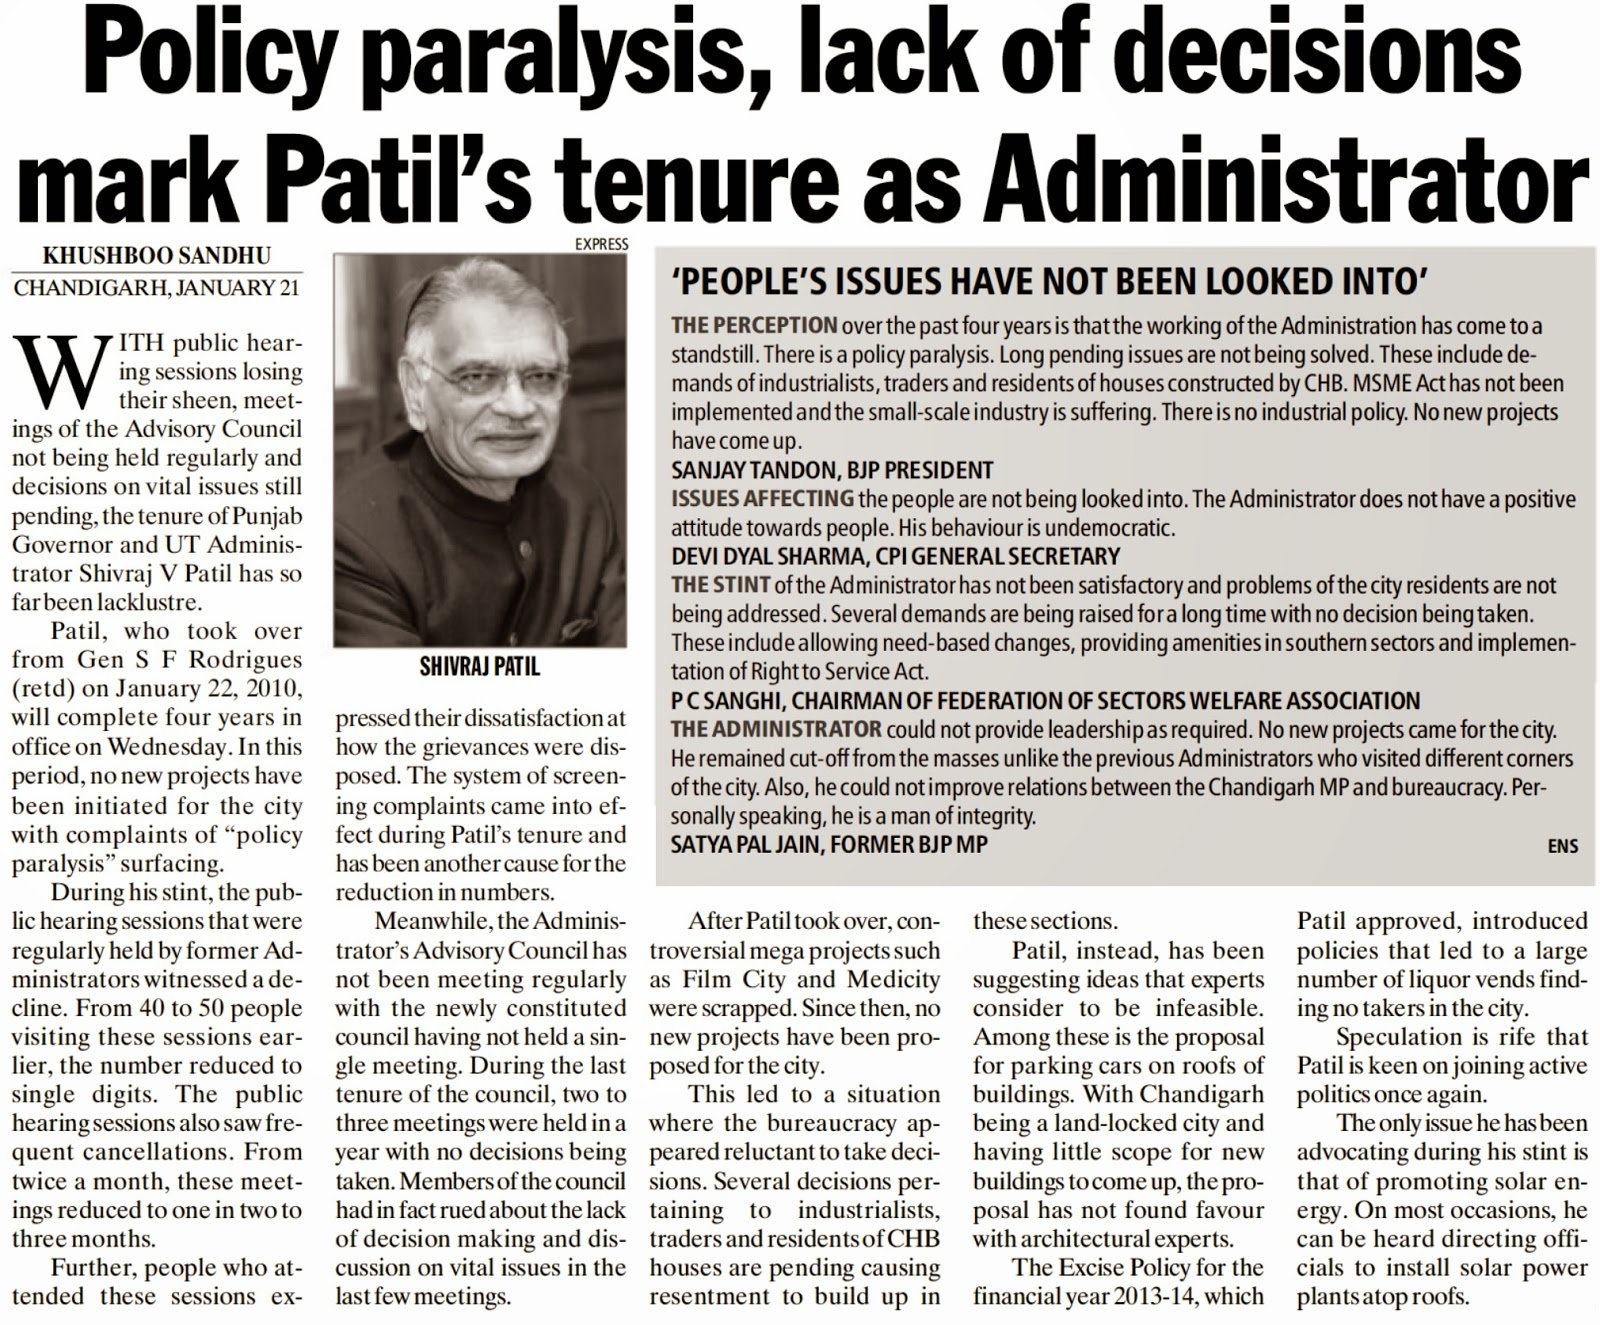 The Administrator could not provide leadership as required. No new projects came for the city. He remained cut-off from the masses unlike the previous Administrators who visited difference corners of the city. Also, he could not improve relations between the Chandigarh MP and bureaucracy. Personally speaking, he is a man of integrity - Satya Pal Jain, former BJP MP